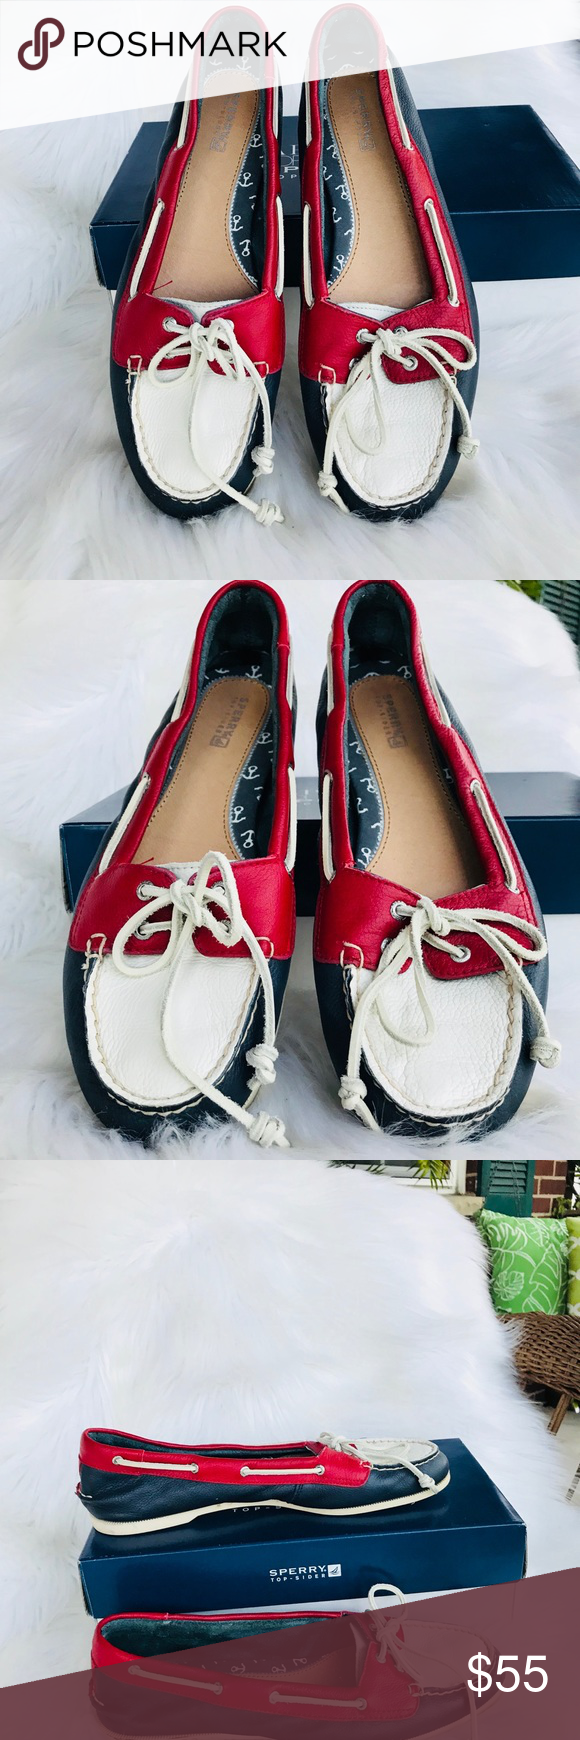 Boat shoes, Sperry top sider shoes, Sperrys